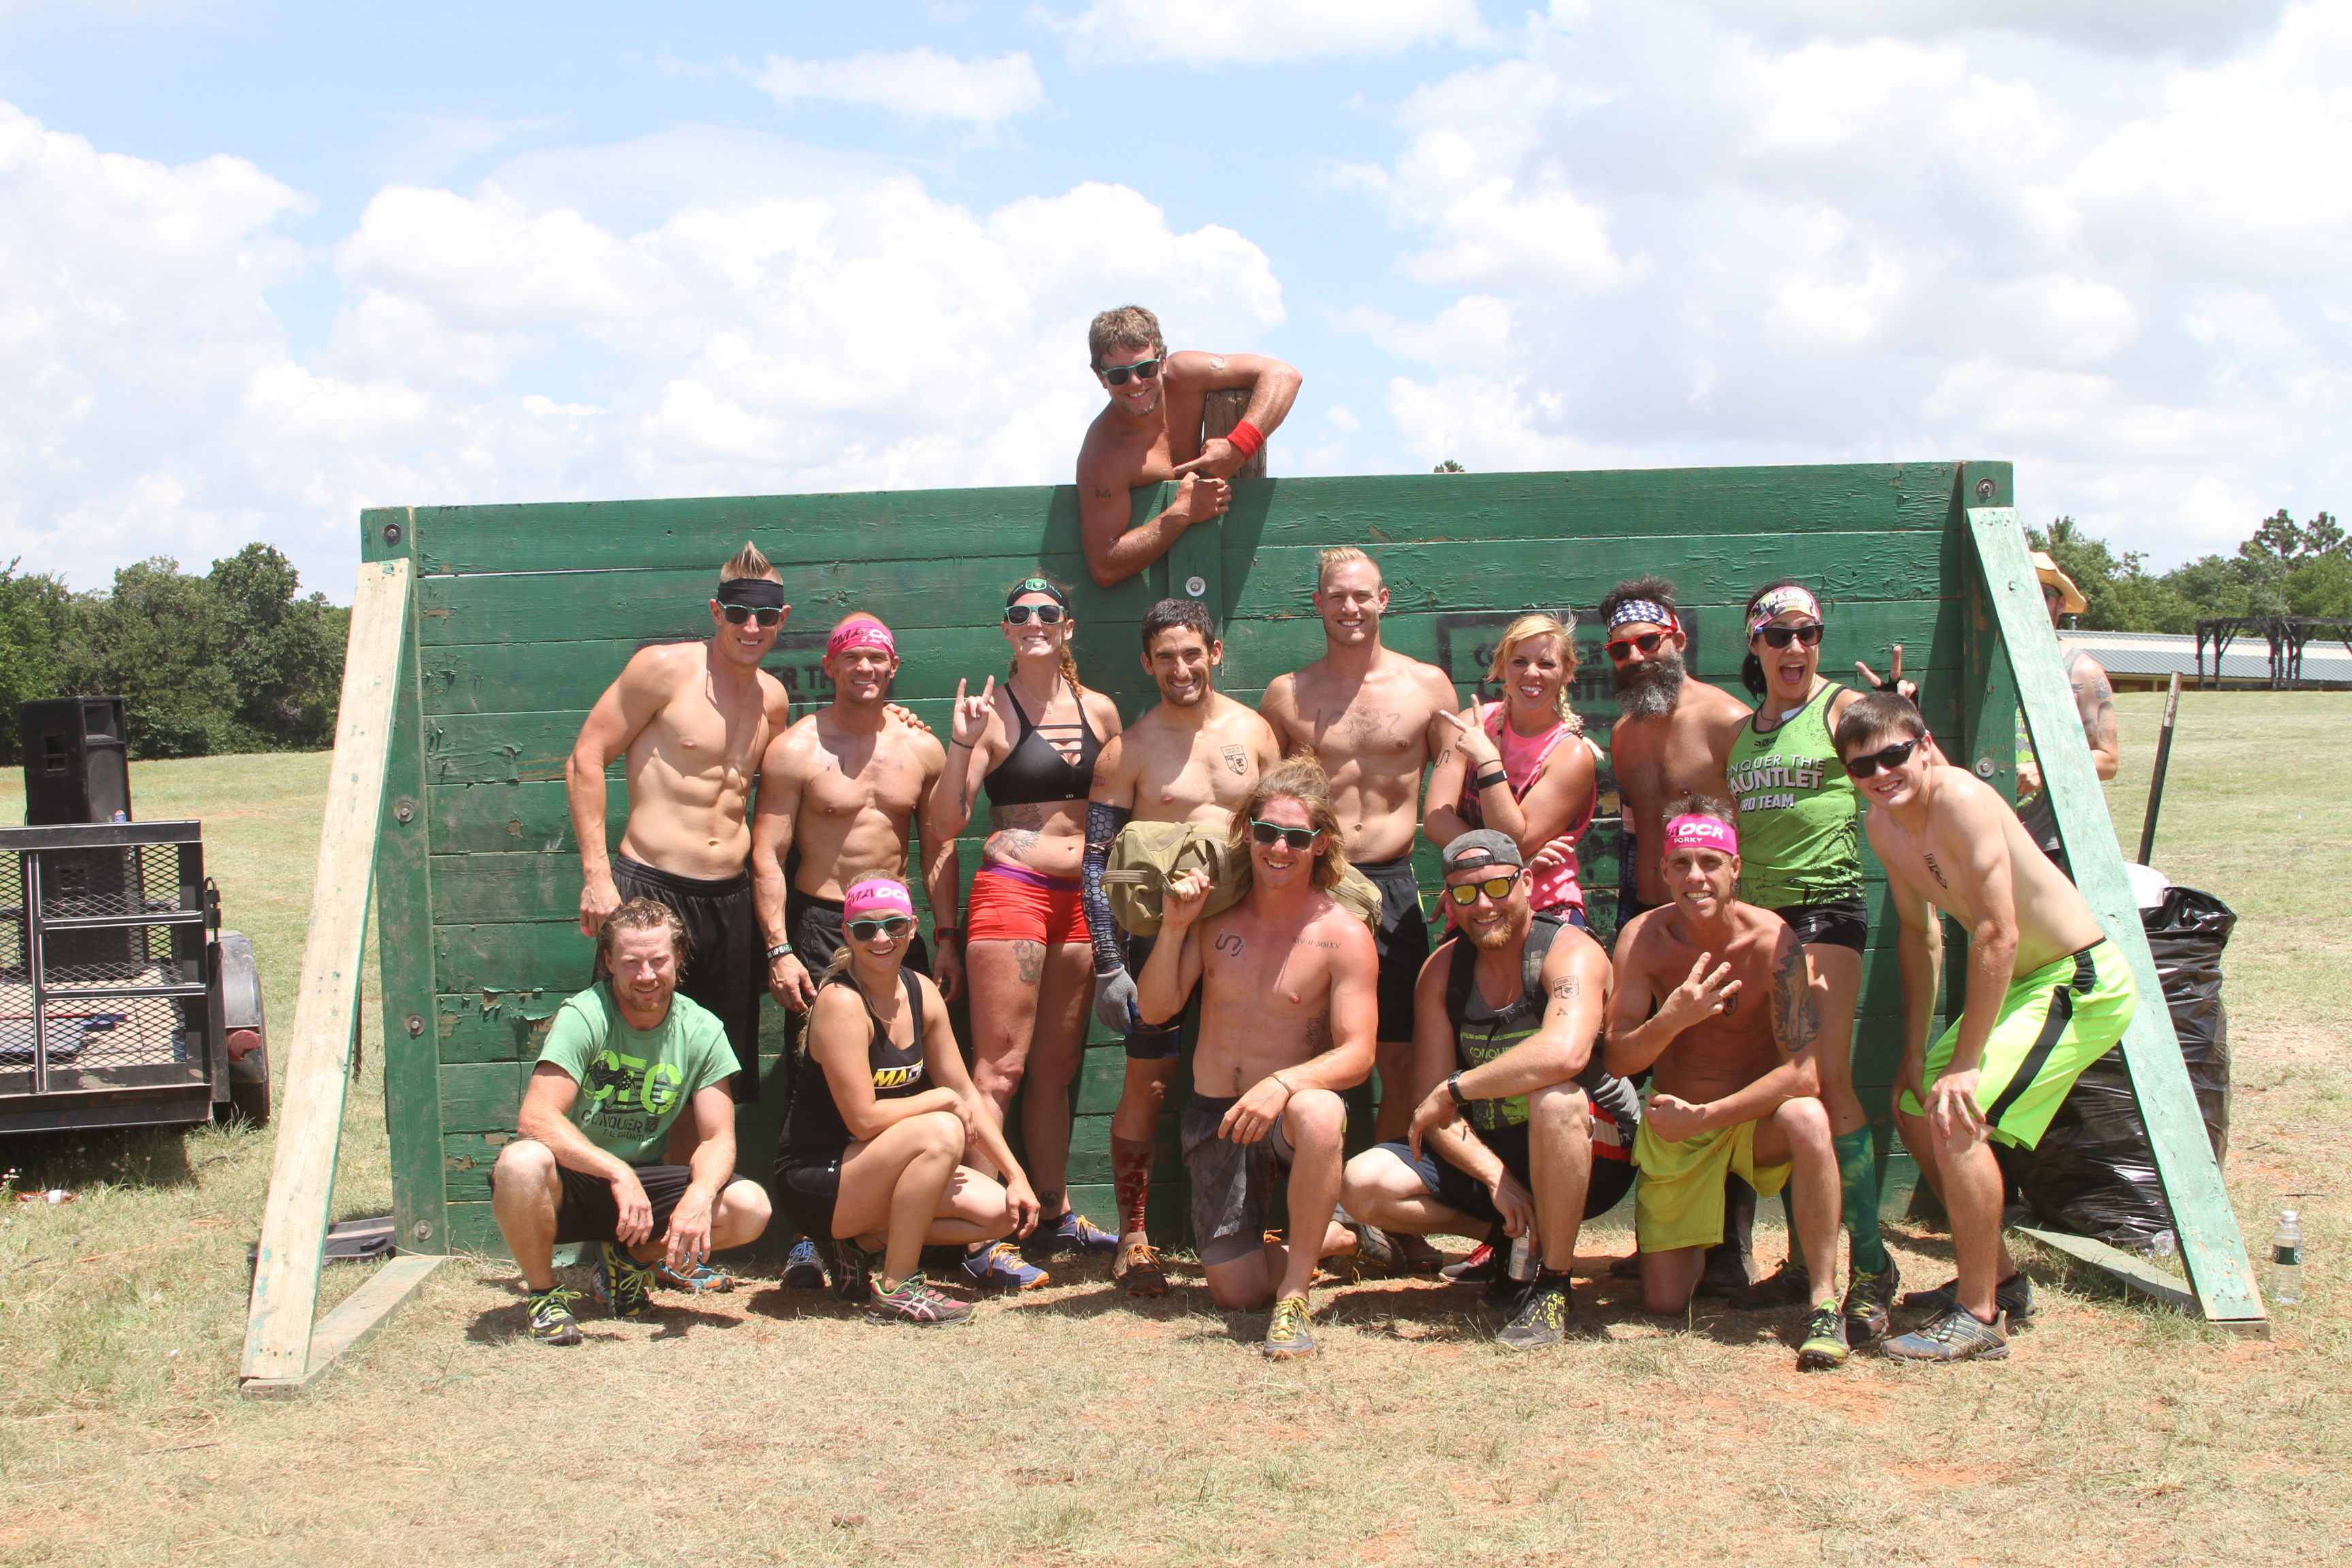 The Conquer The Gauntlet Pro Team and friends join Evan for the final 4 miles of OCR America.